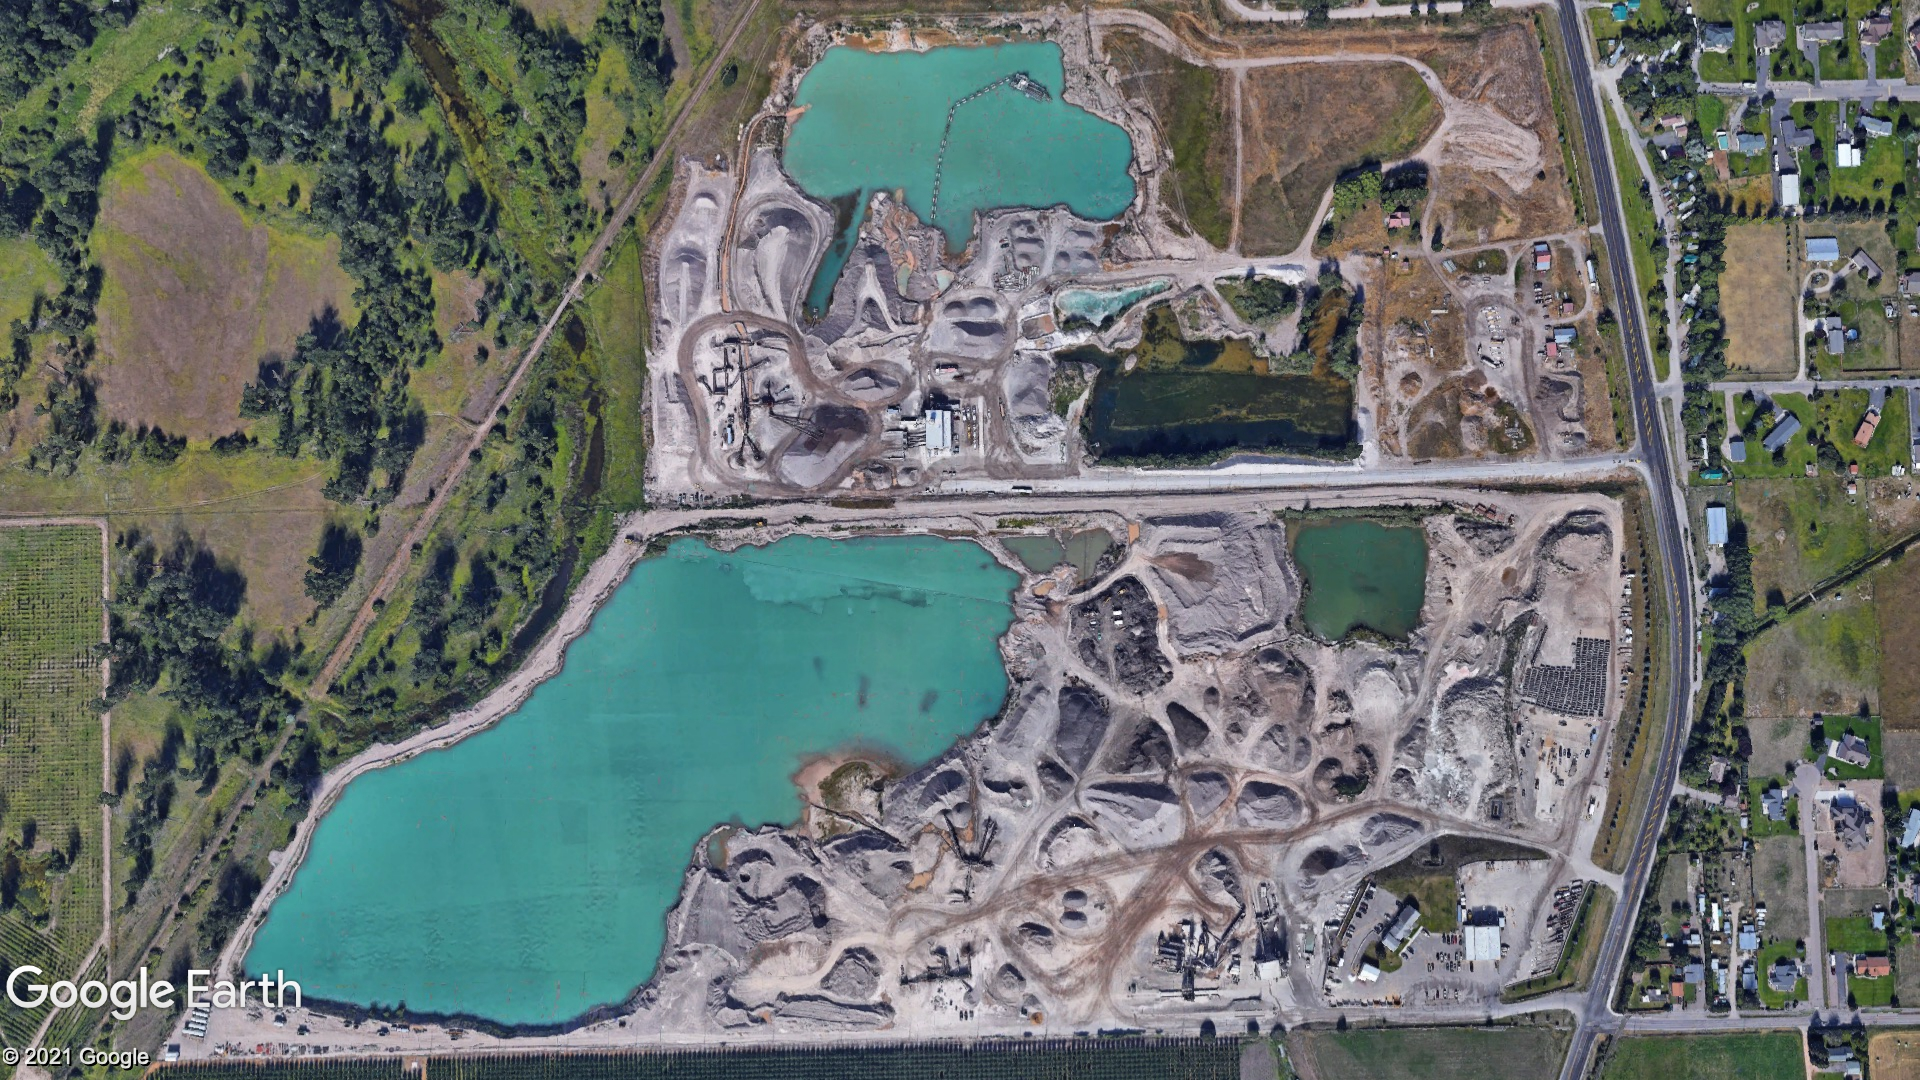 A satellite image showing an aggregate production site with large ponds and rock piles.